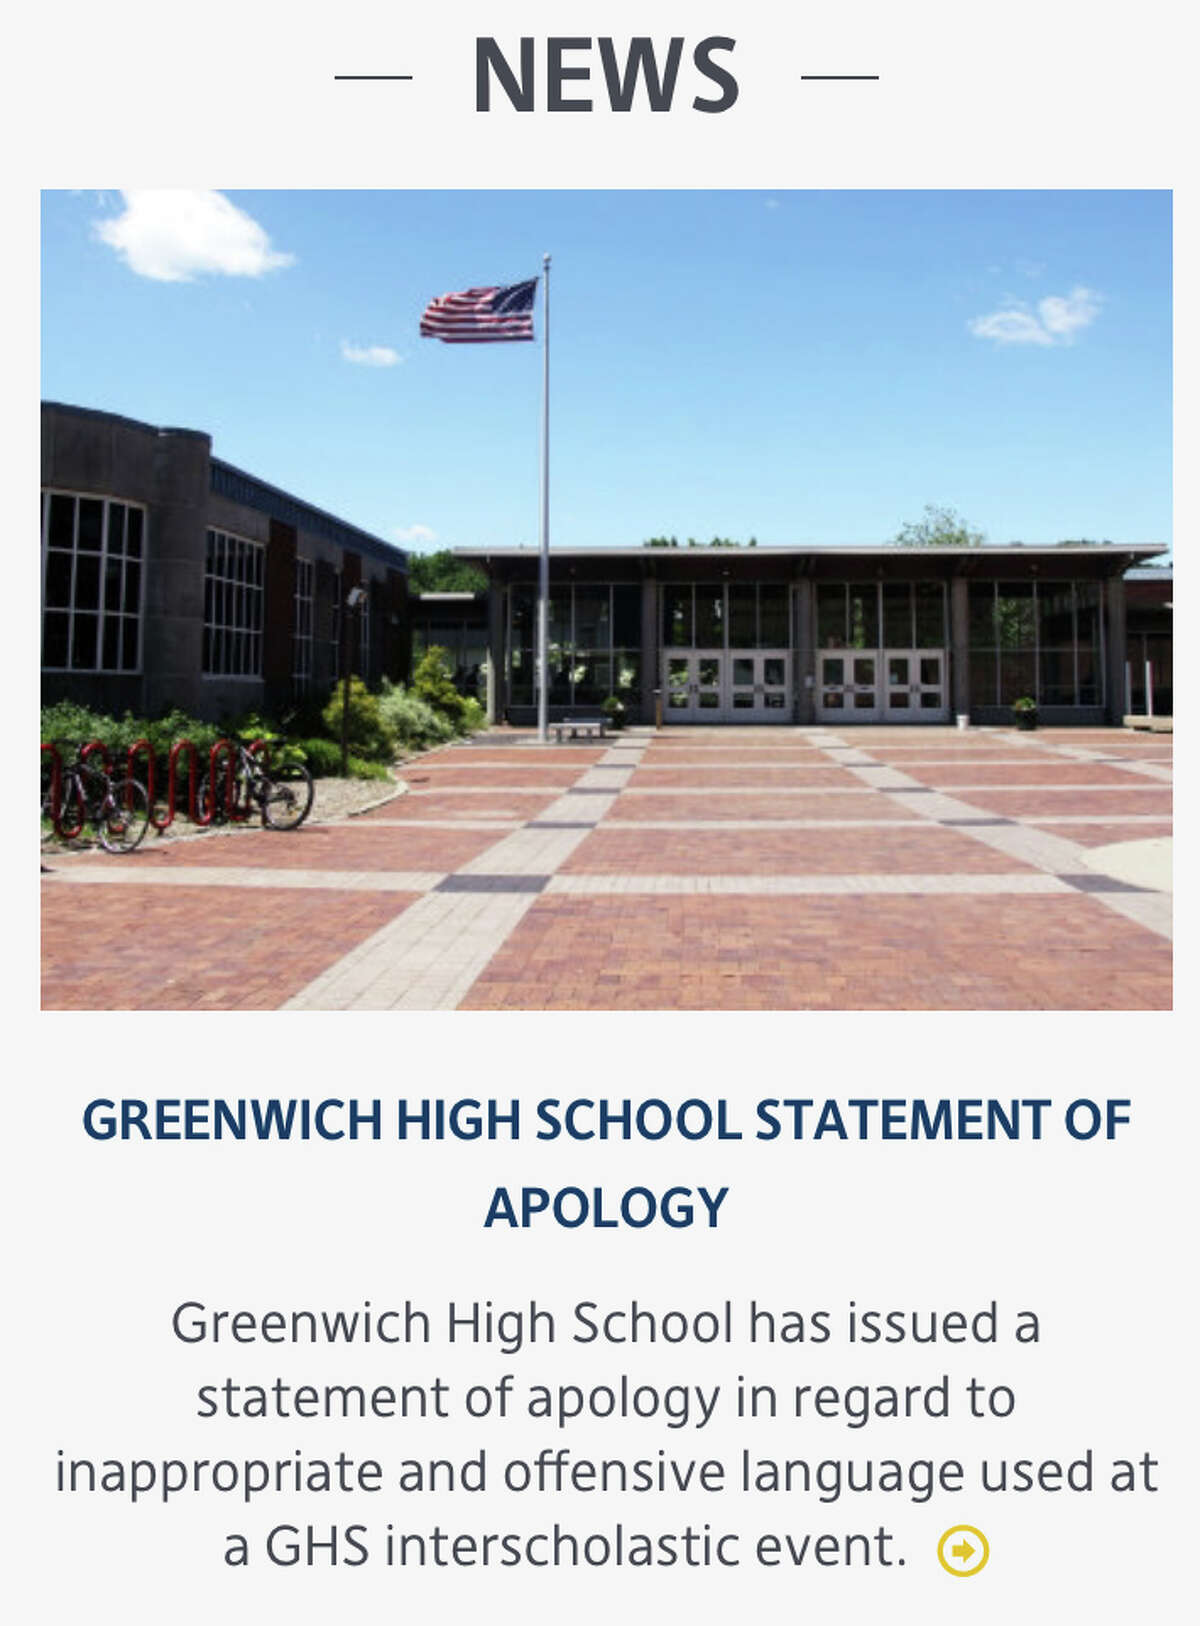 Greenwich Public Schools posted a letter of apology from Headmaster Chris Winters on the district website to both the Greenwich and Trumbull communities for an offensive play call.